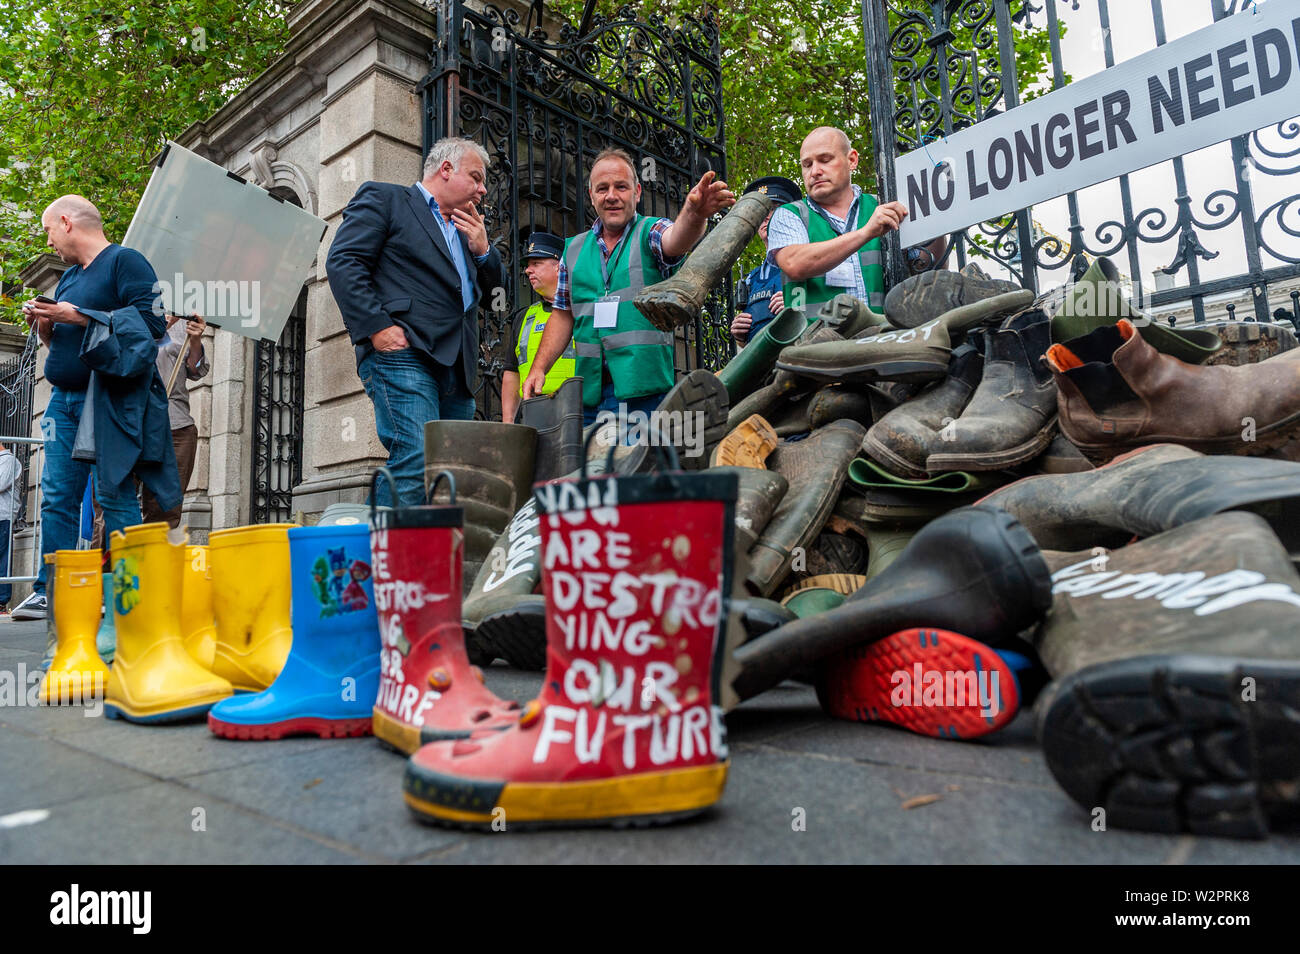 dublin-ireland-10th-july-2019-thousands-of-farmers-descended-on-leinster-house-today-in-protest-at-the-mercosur-deal-which-farmers-claim-will-be-the-final-nail-in-the-coffin-for-their-way-of-life-a-west-cork-beef-farmer-throws-his-wellington-boots-outside-the-dail-to-protest-against-the-proposed-mercosur-deal-credit-andy-gibsonalamy-live-news-W2PRK8.jpg